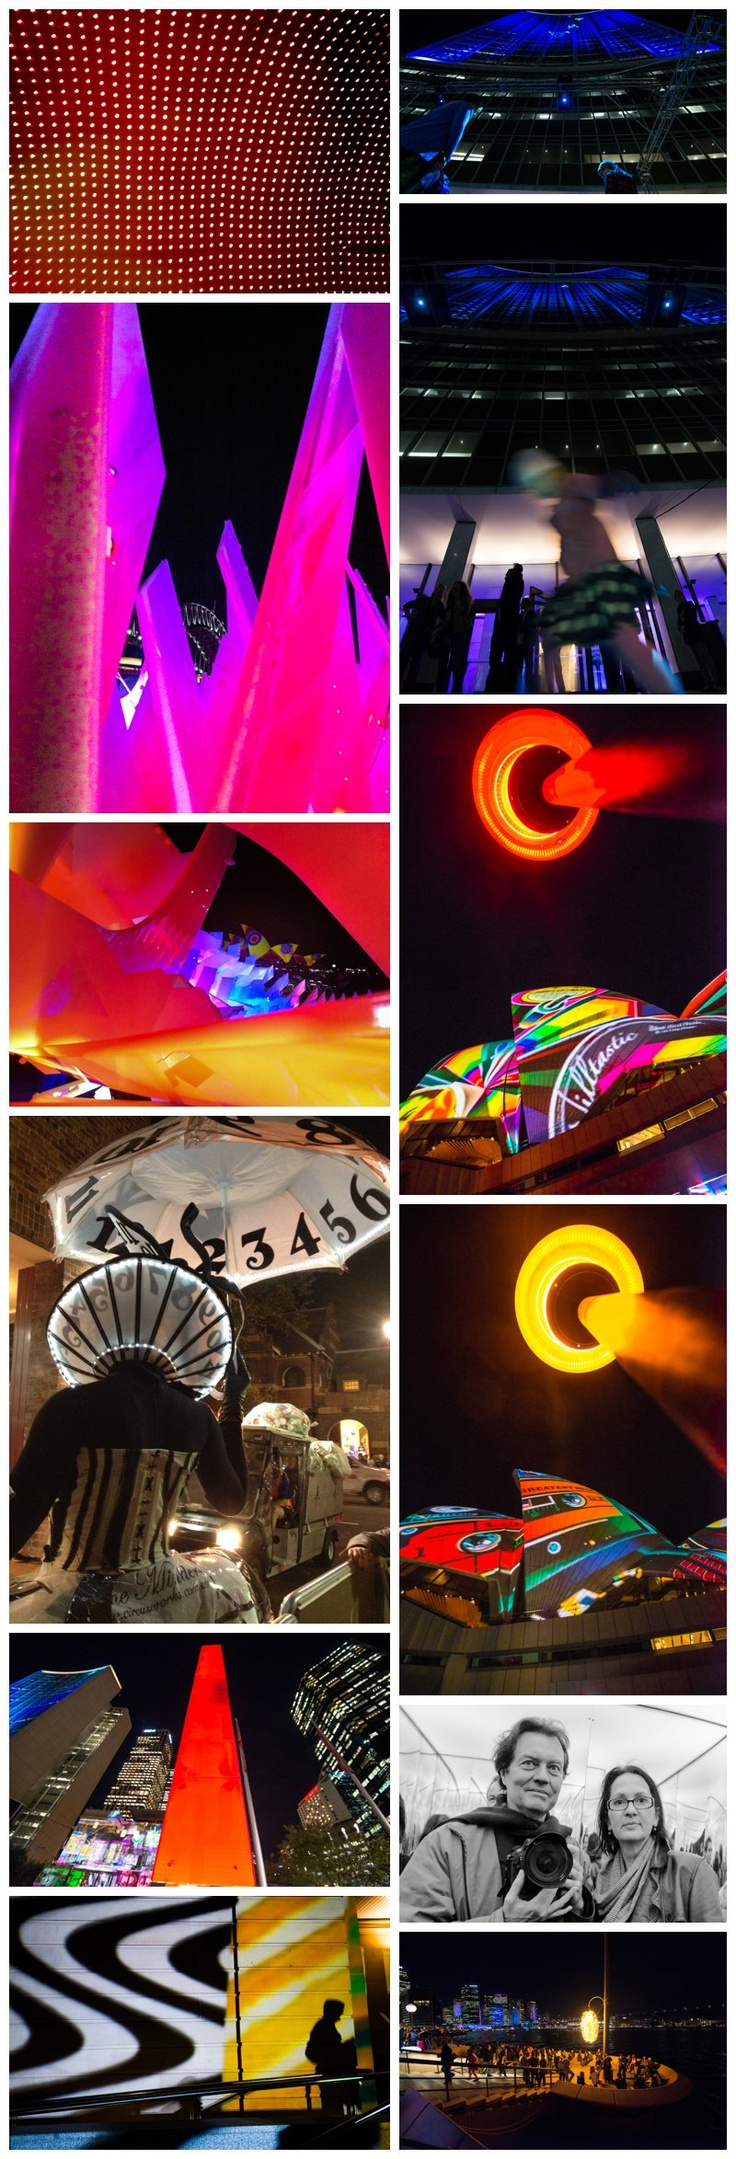 Vivid Sydney 2013 - what a fantastic way to celebrate the beauty of Sydney but by lights at night?